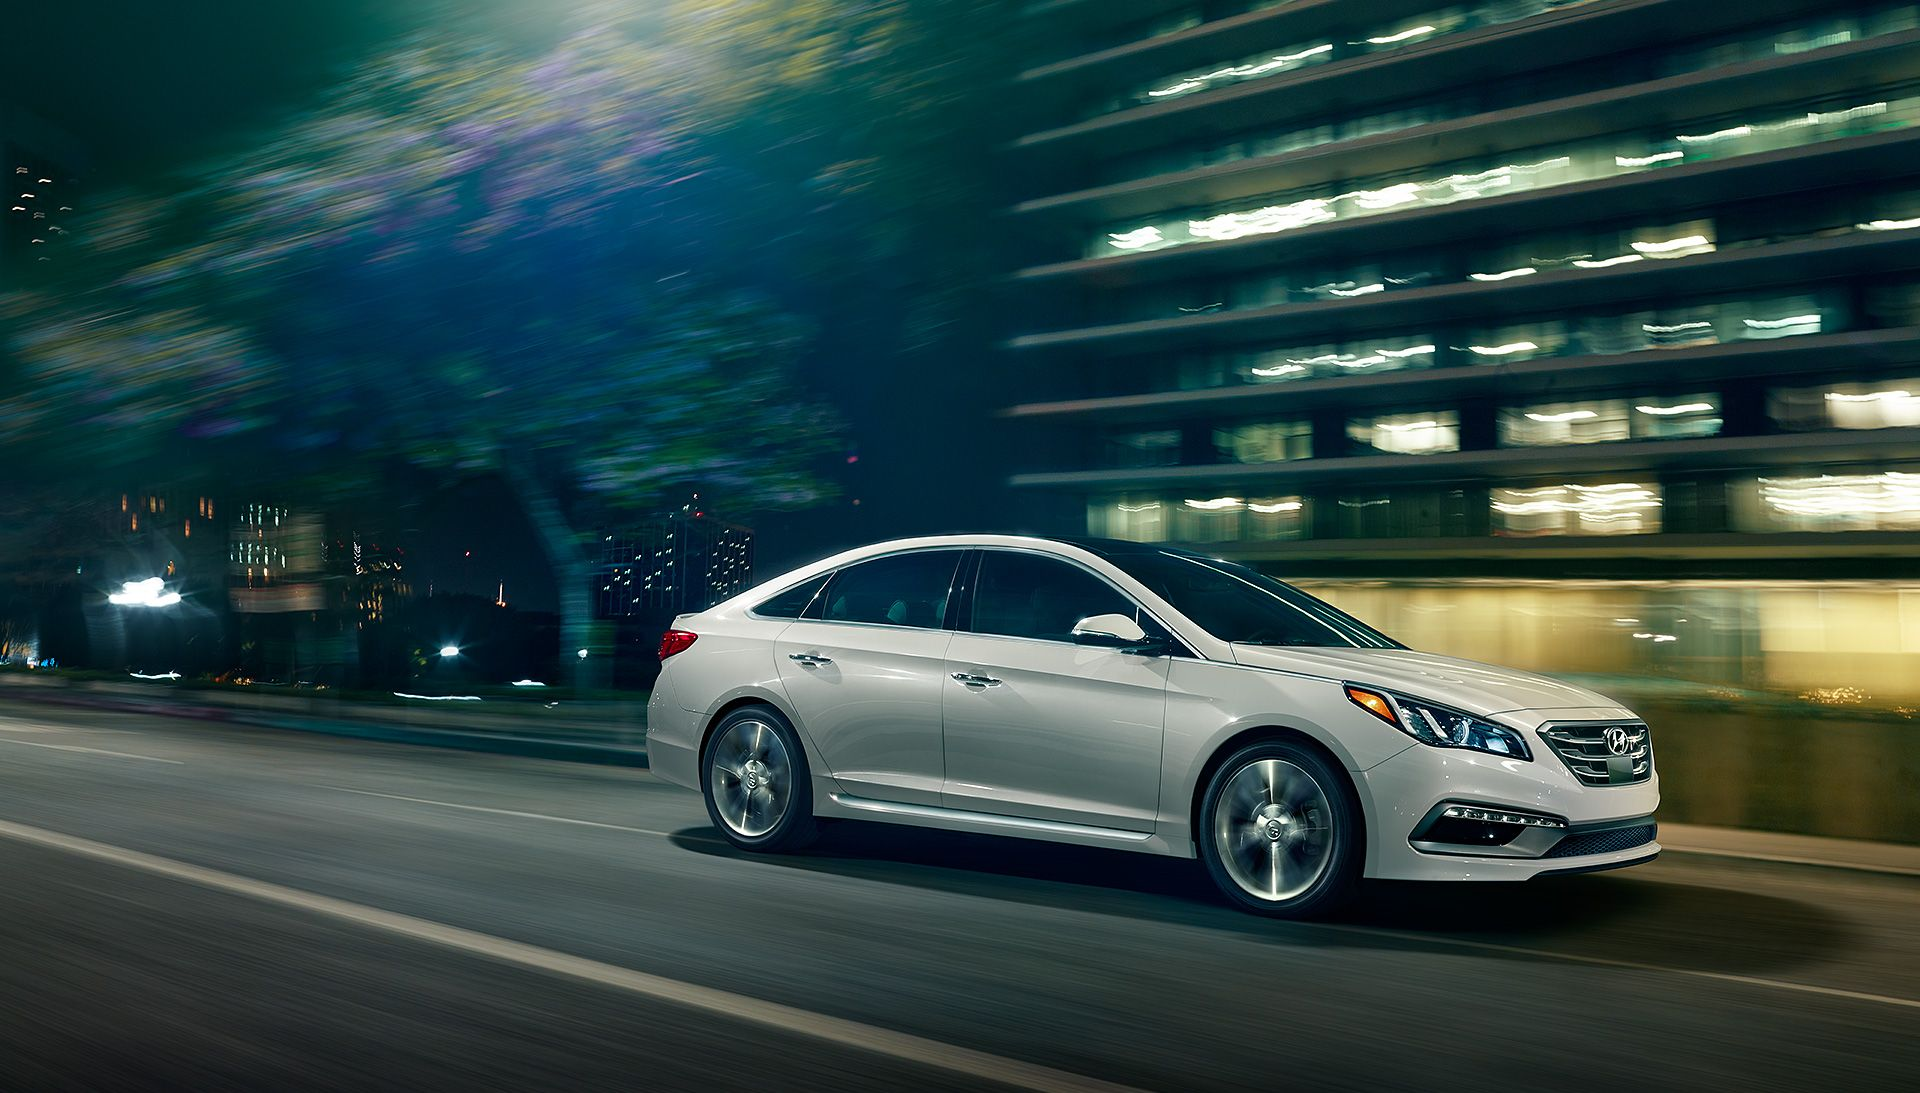 Browse Our Selection of New Hyundai Vehicles